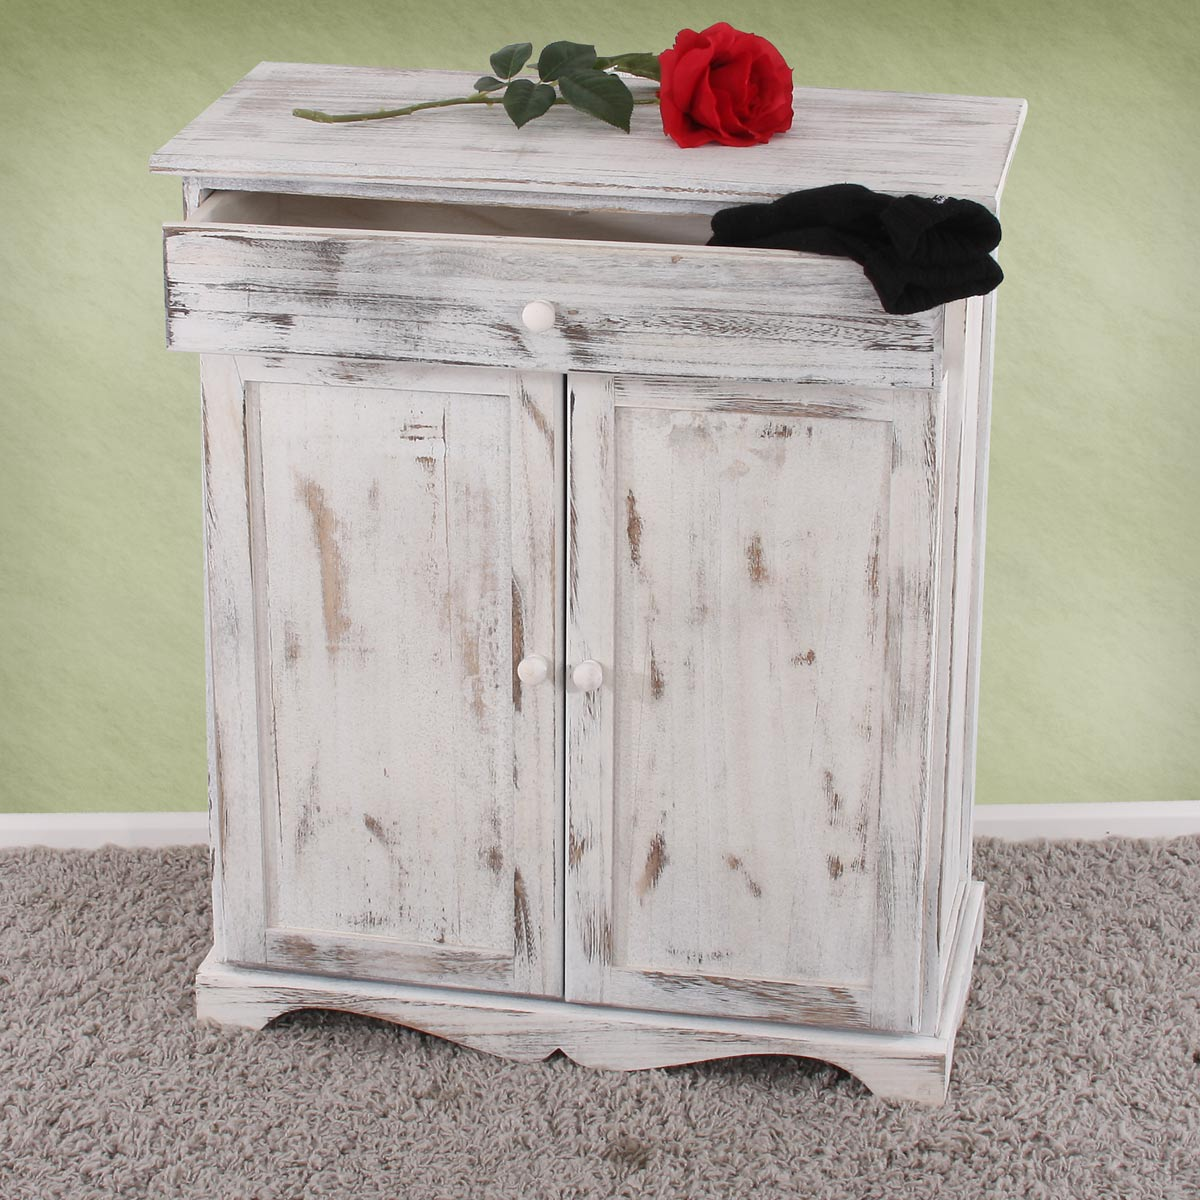 commode table d 39 appoint armoire 66x33x78cm shabby vintage gris blanc marron. Black Bedroom Furniture Sets. Home Design Ideas